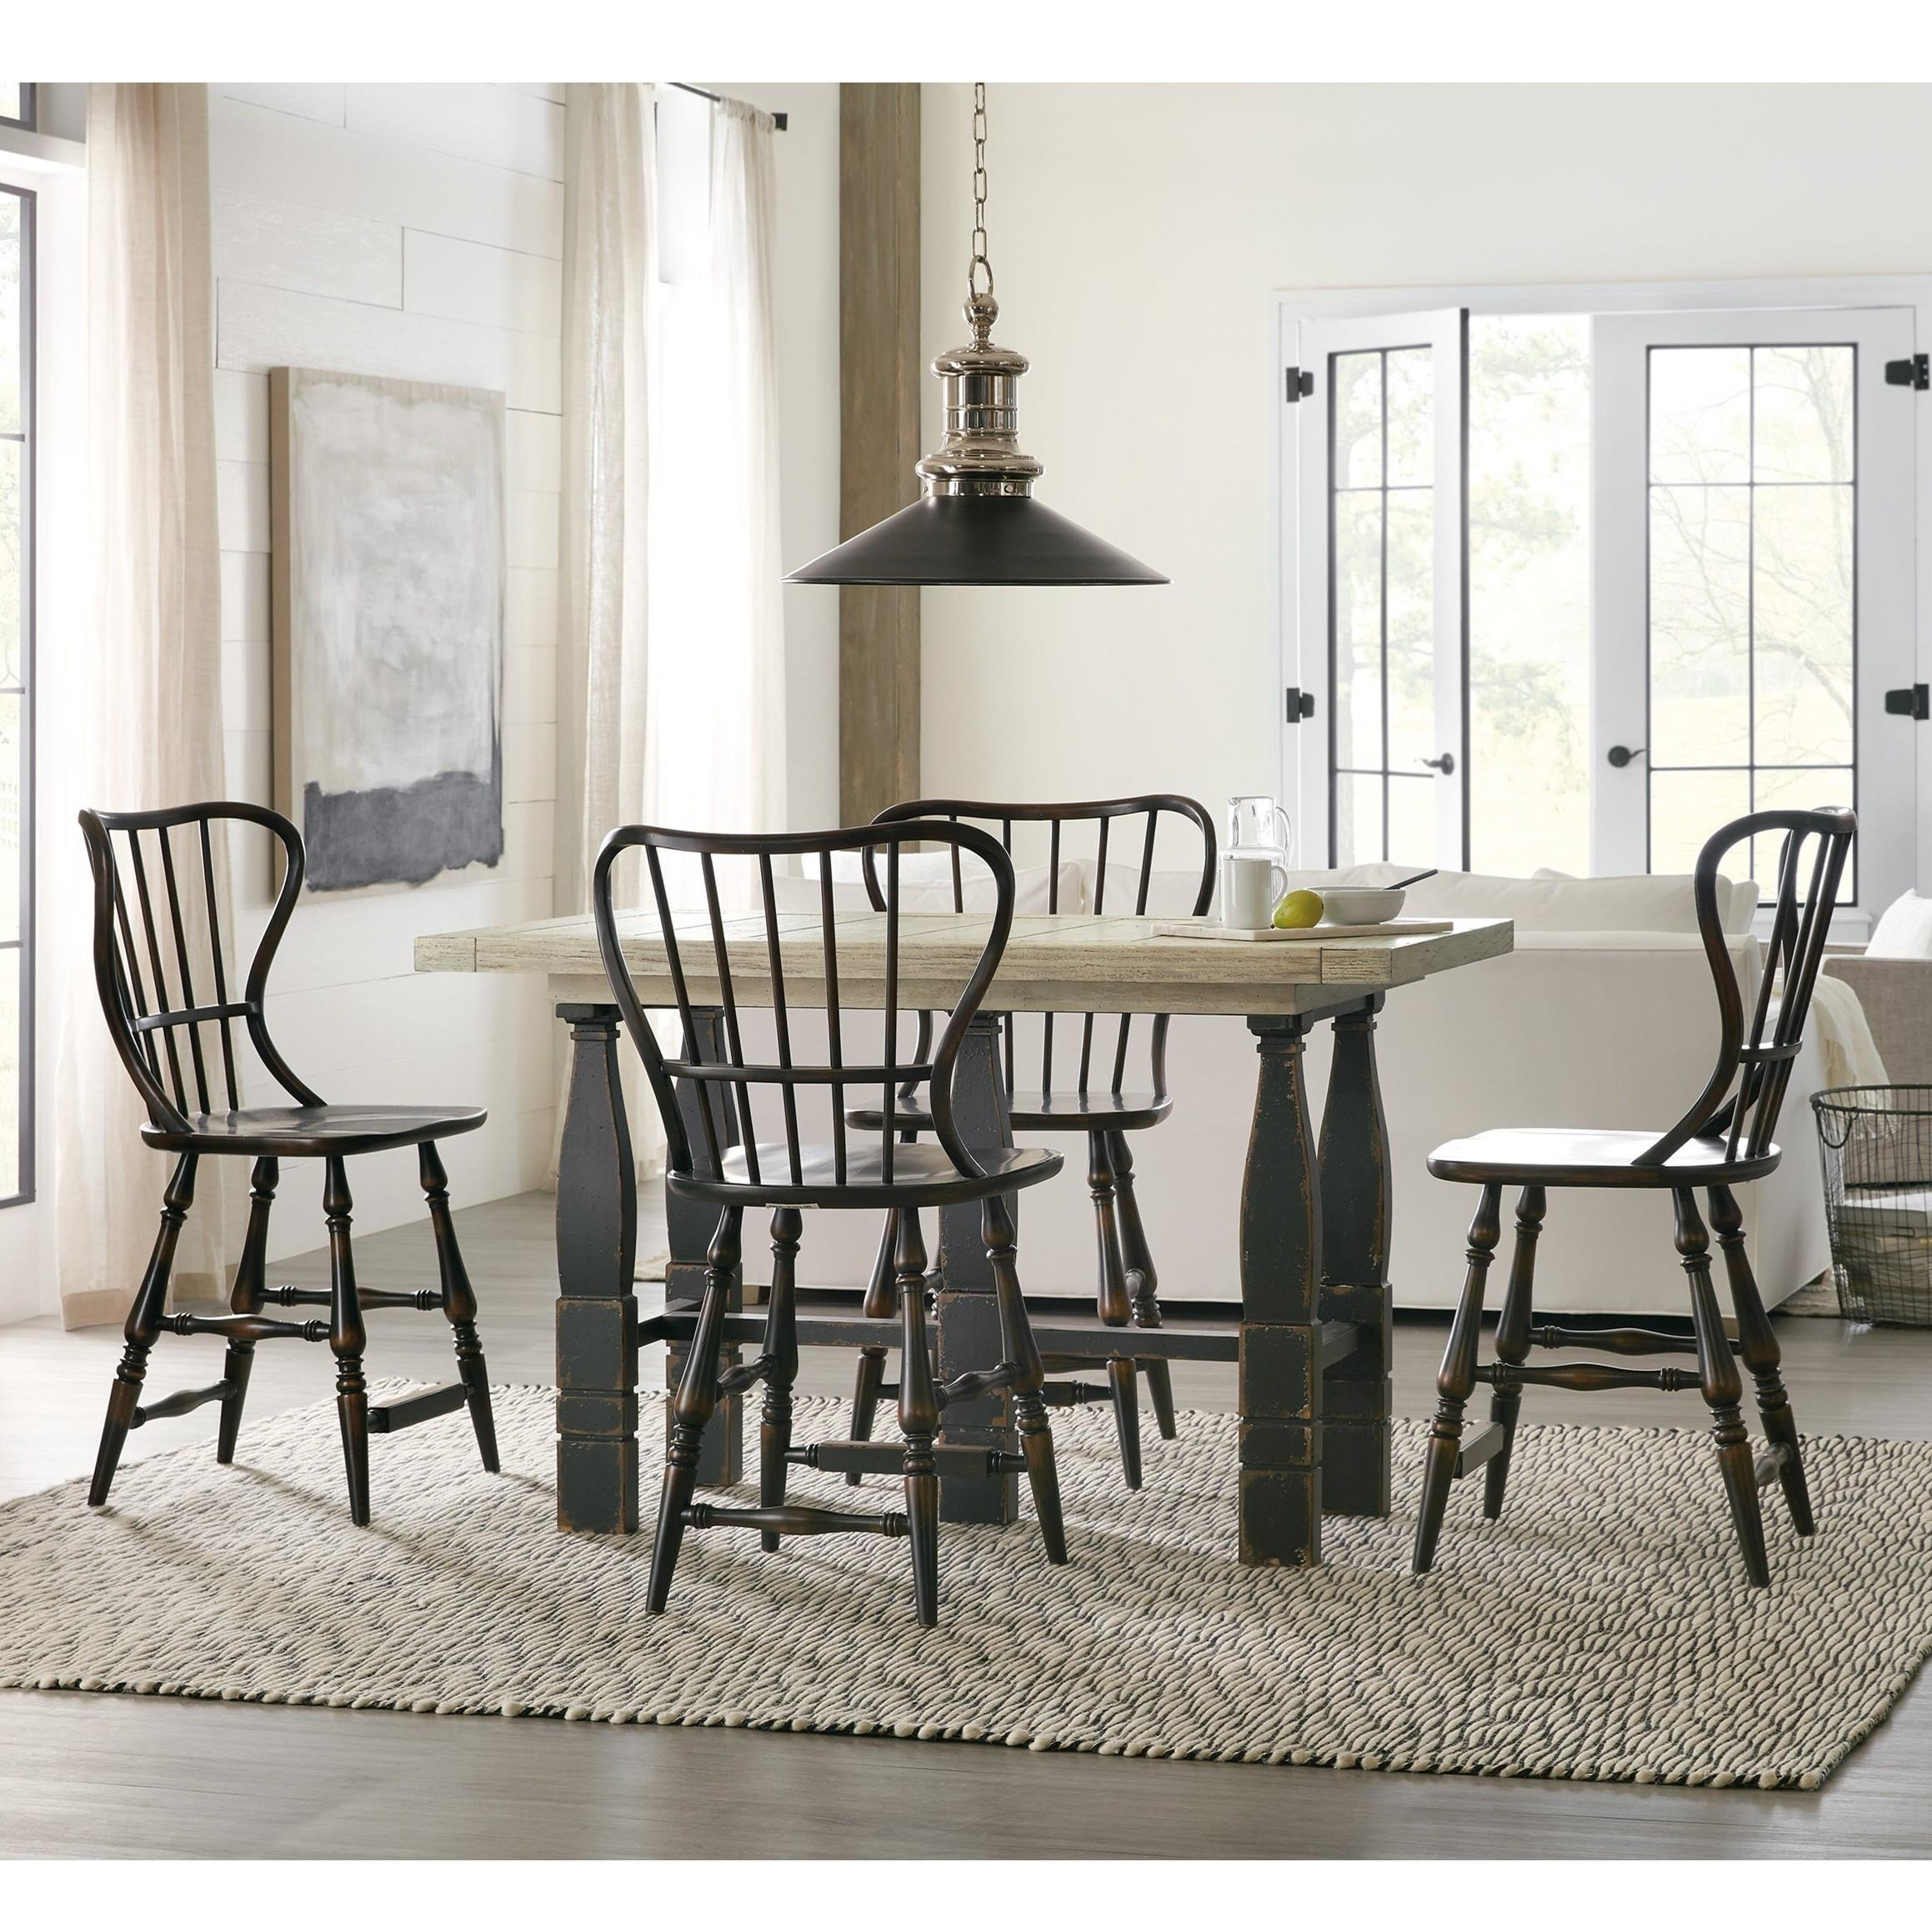 Ciao Bella 5-Piece Counter Pub Table Set by Hooker Furniture at Baer's Furniture